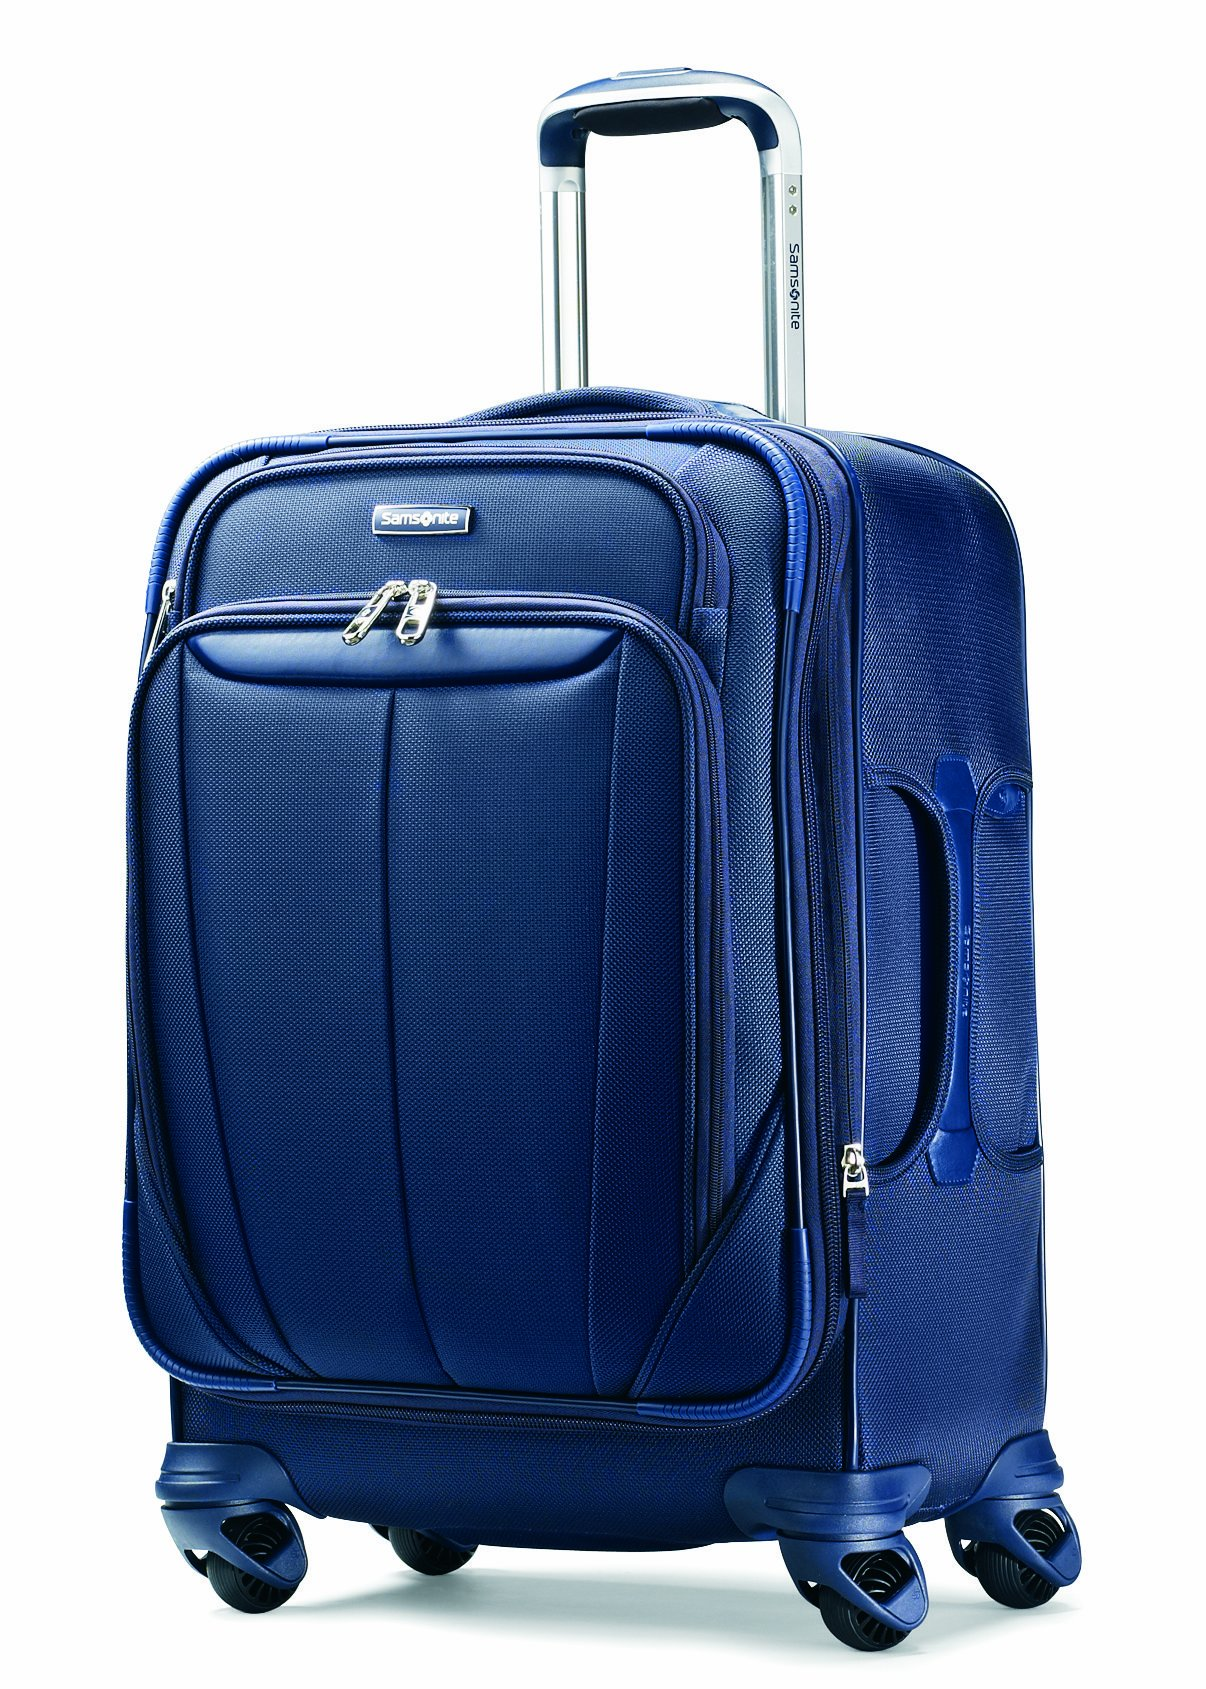 Samsonite Luggage Silhouette Sphere Expandable 21 Inch Spinner, Indigo Blue, One Size